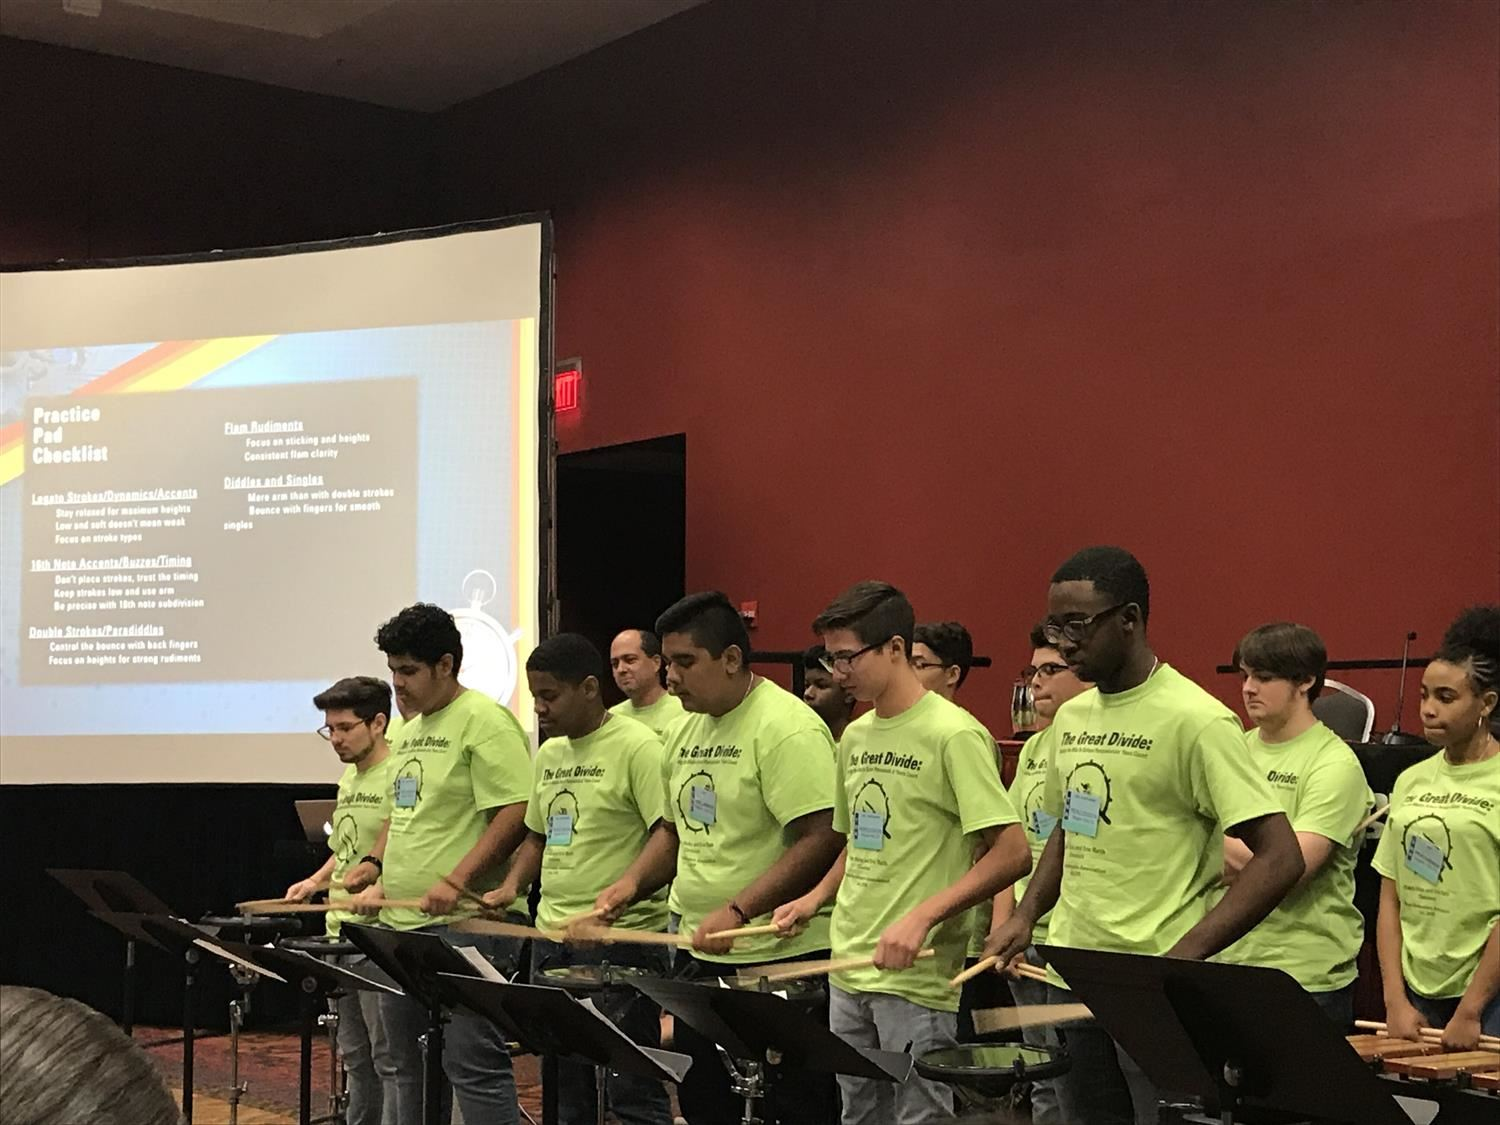 Wagner drumline at Texas Bandmasters Association Clinic